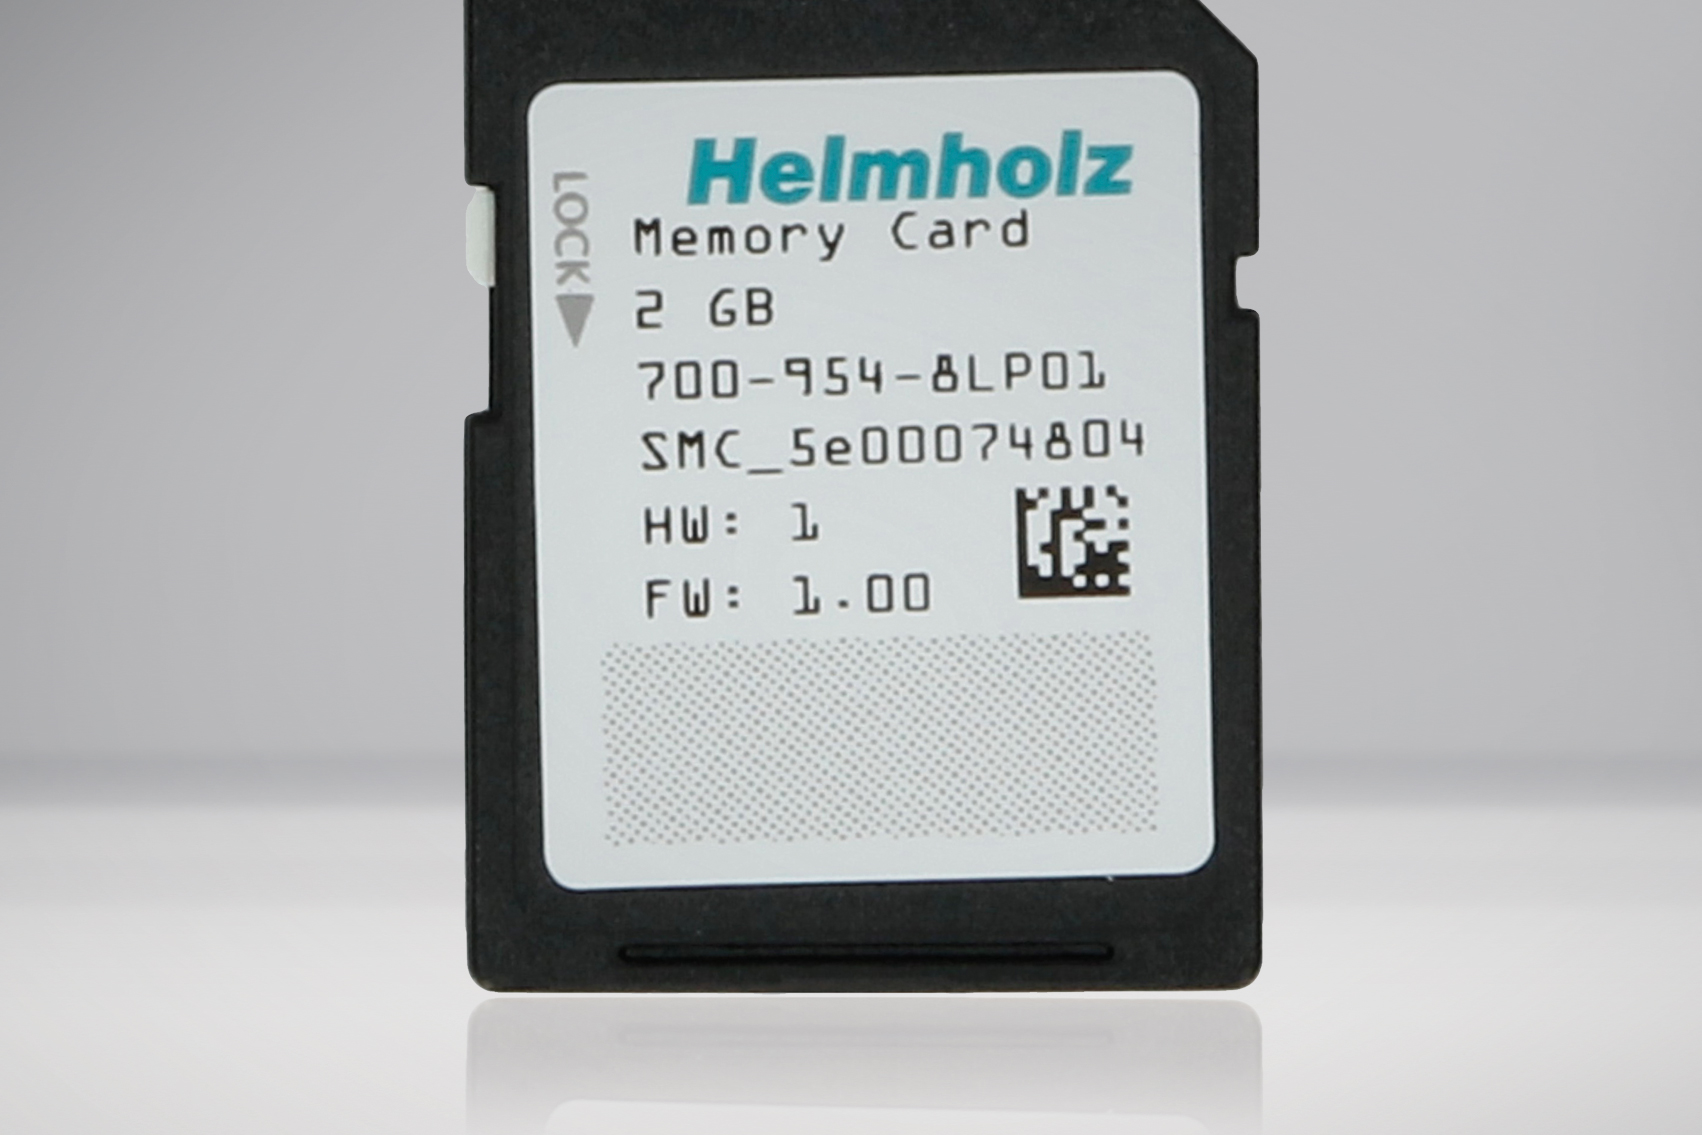 Helmholz Memory Cards / Accessories